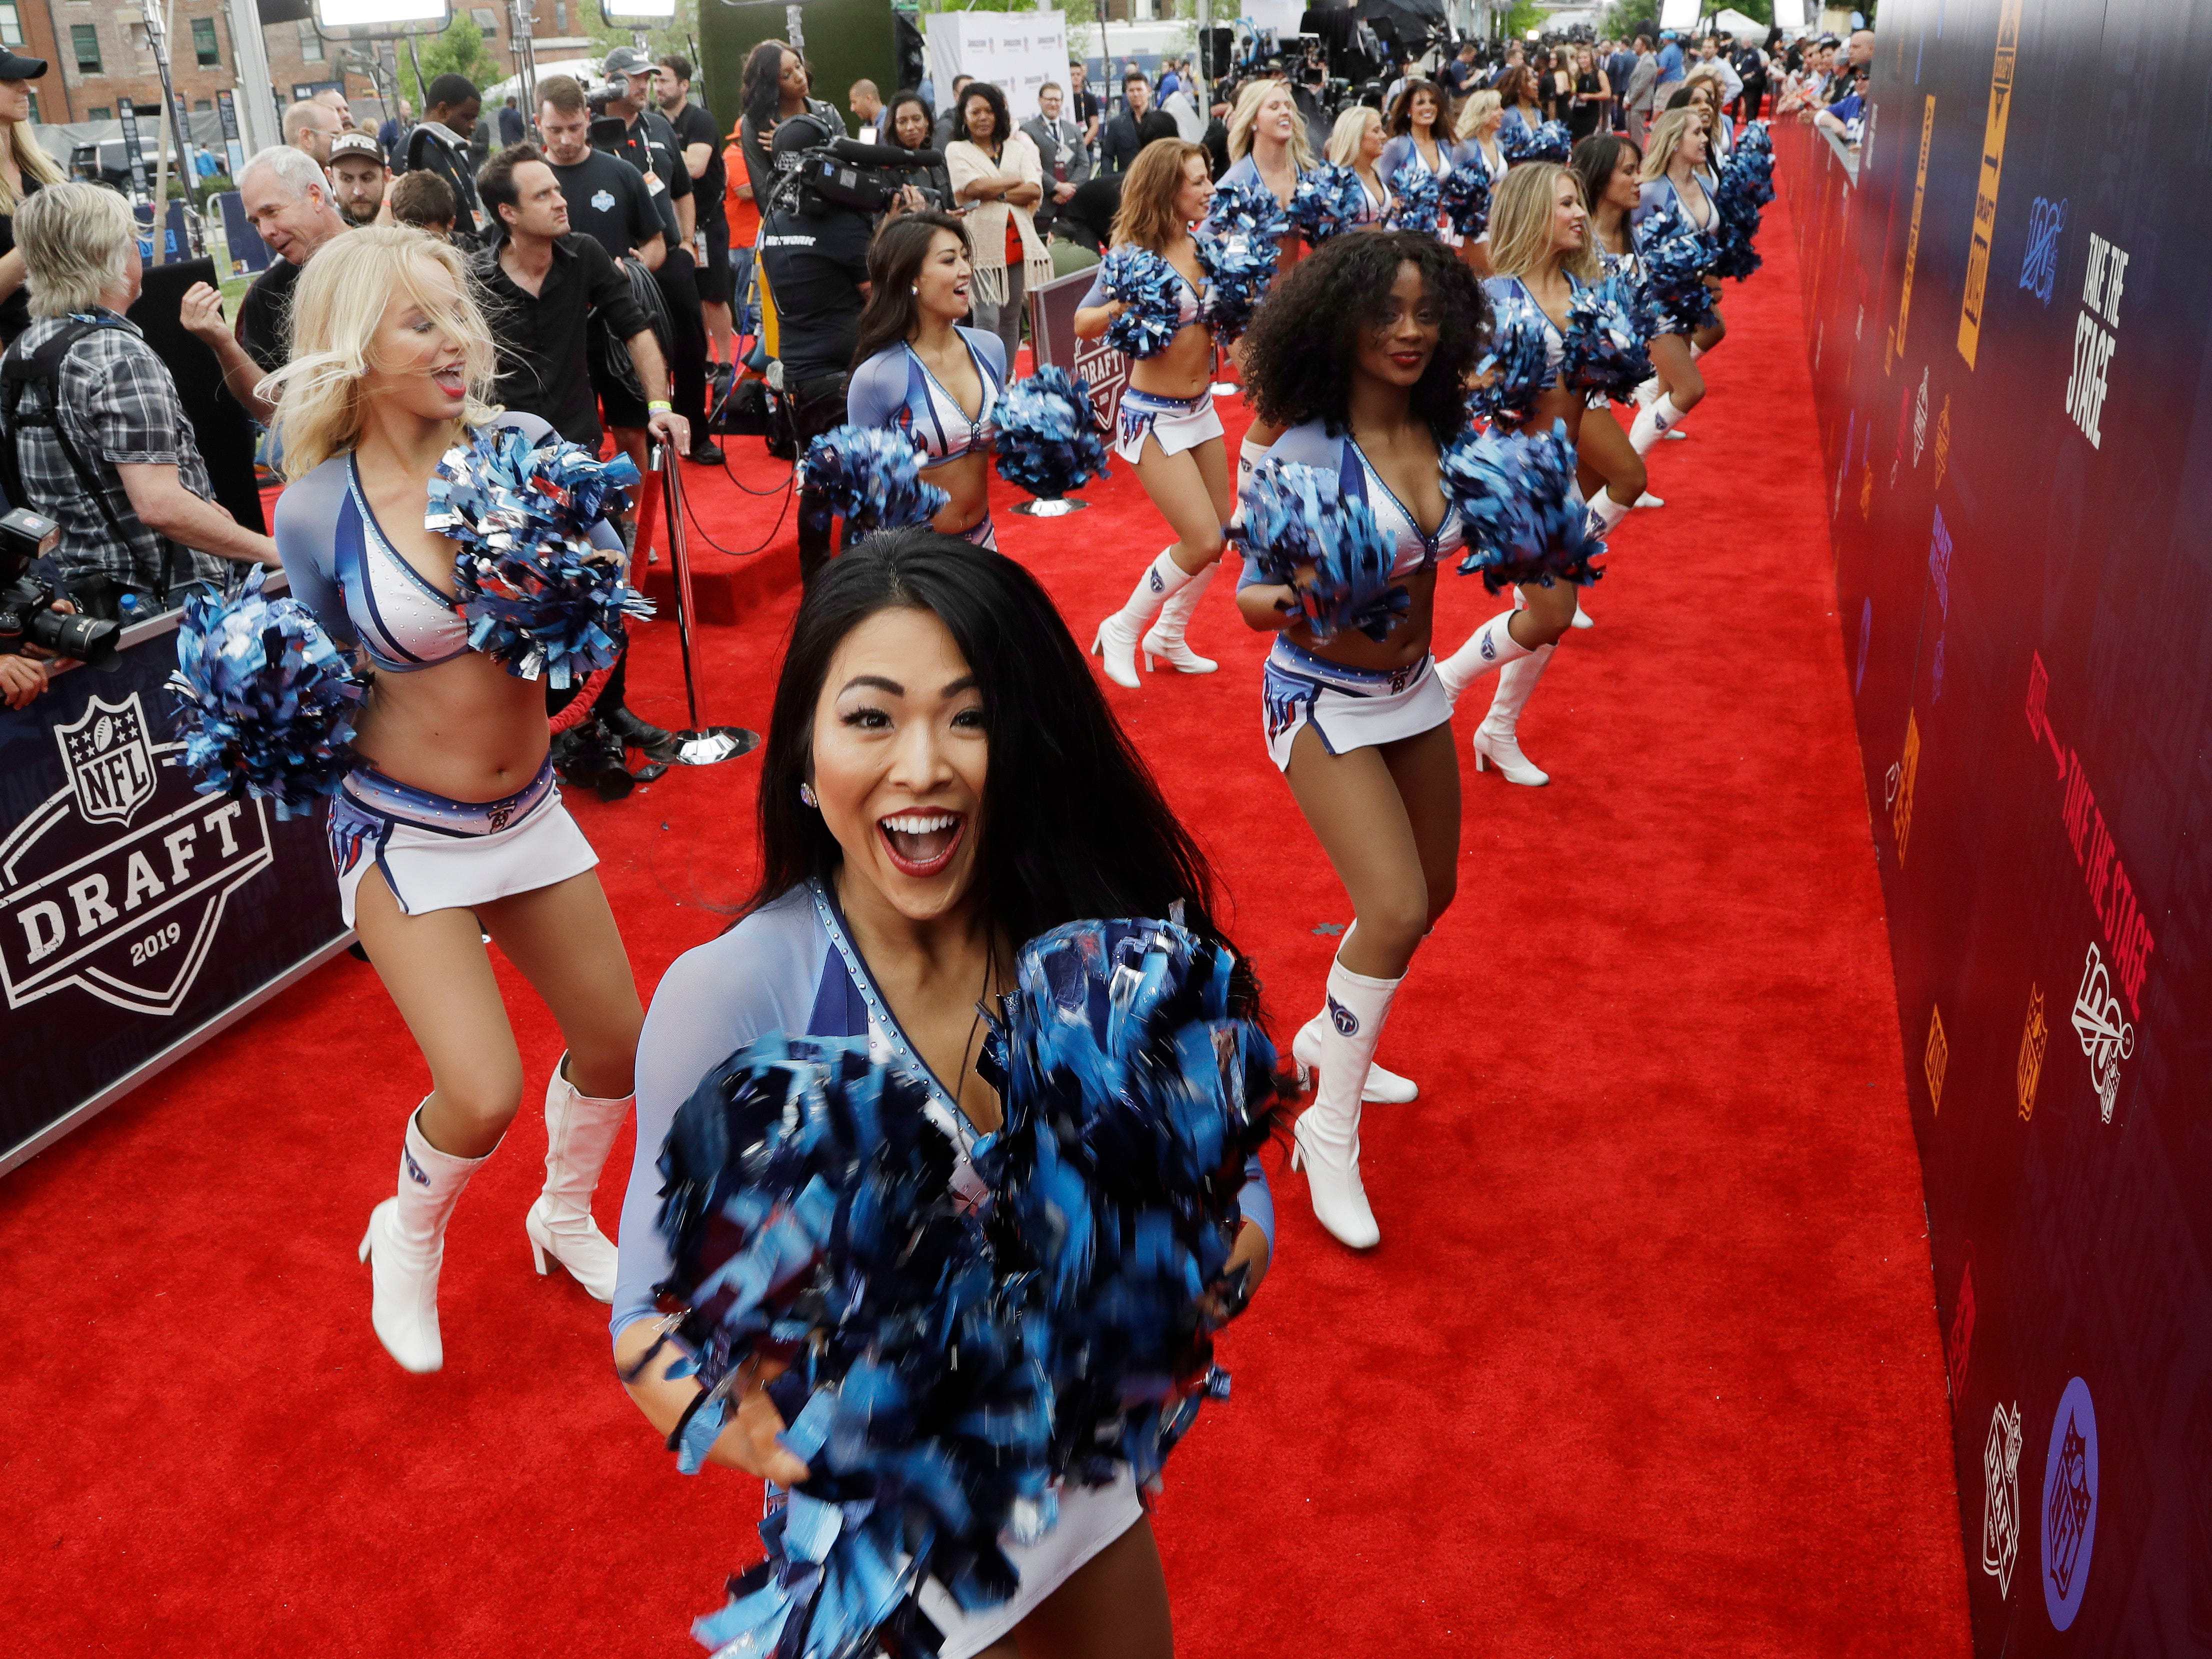 Tennessee Titans cheerleaders perform on the red carpet ahead of the first round of the draft.